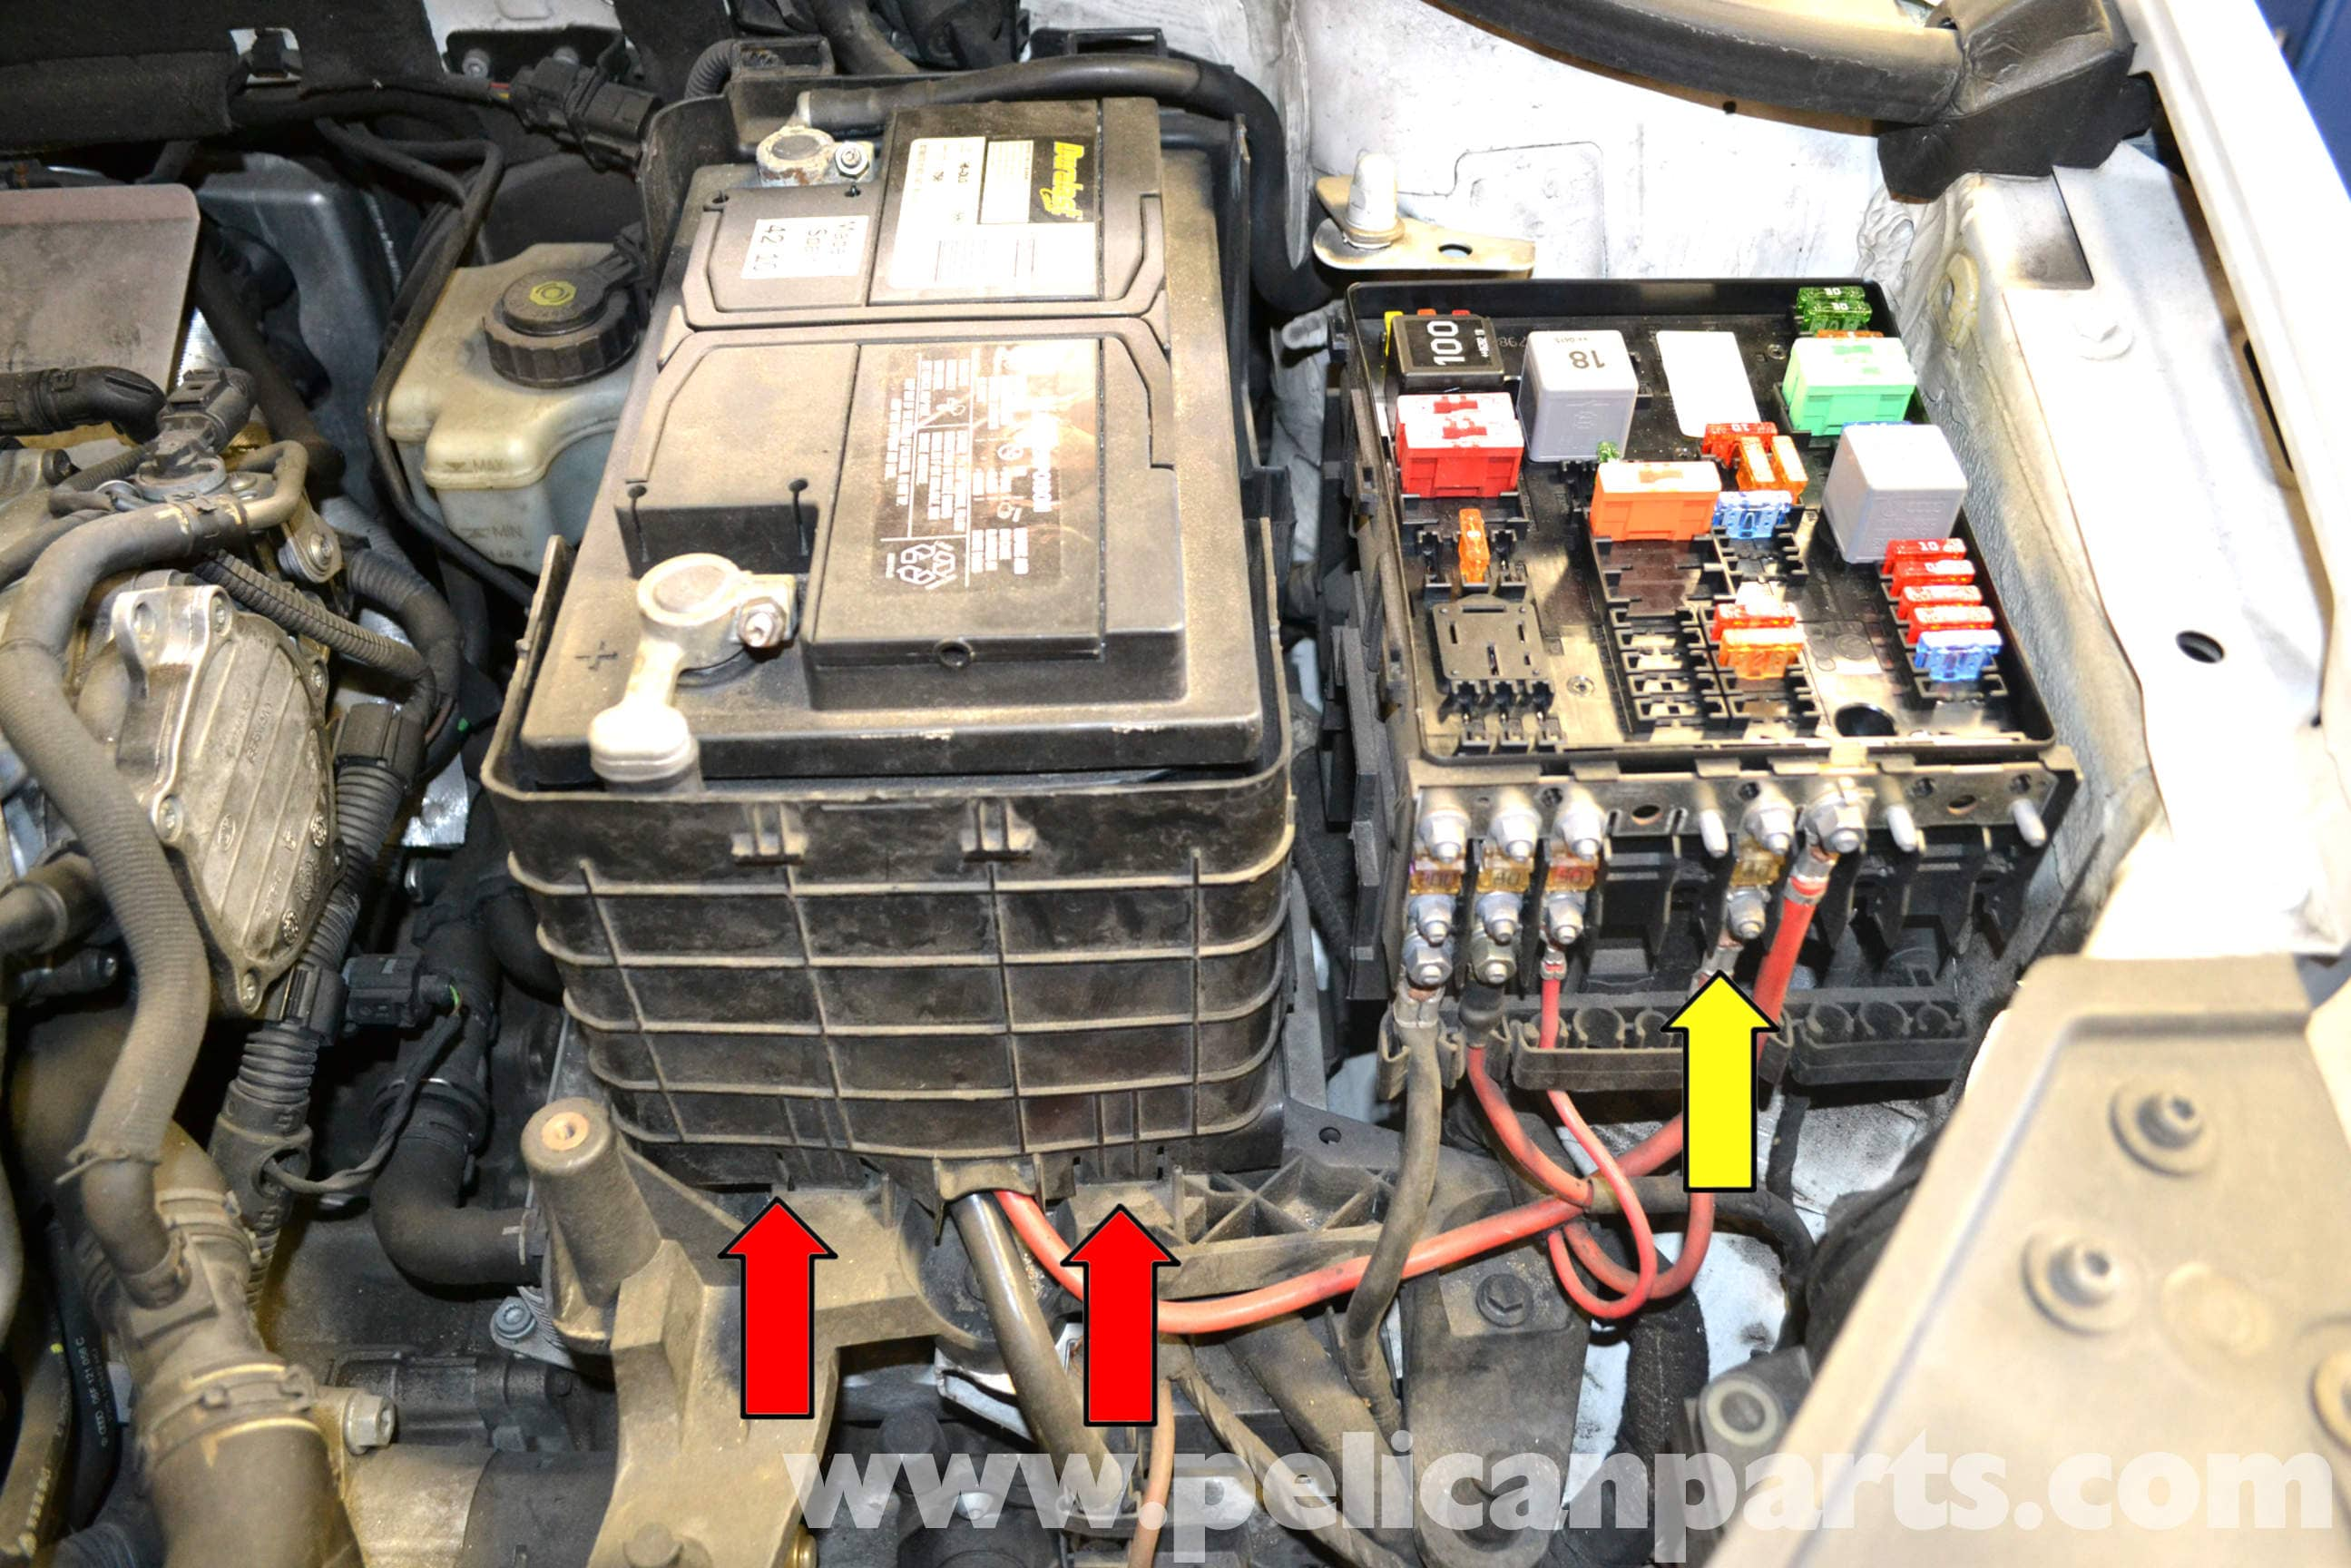 2009 Jetta Tdi Wiring Diagram Grounds Volkswagen Golf Gti Mk V Battery Replacement And